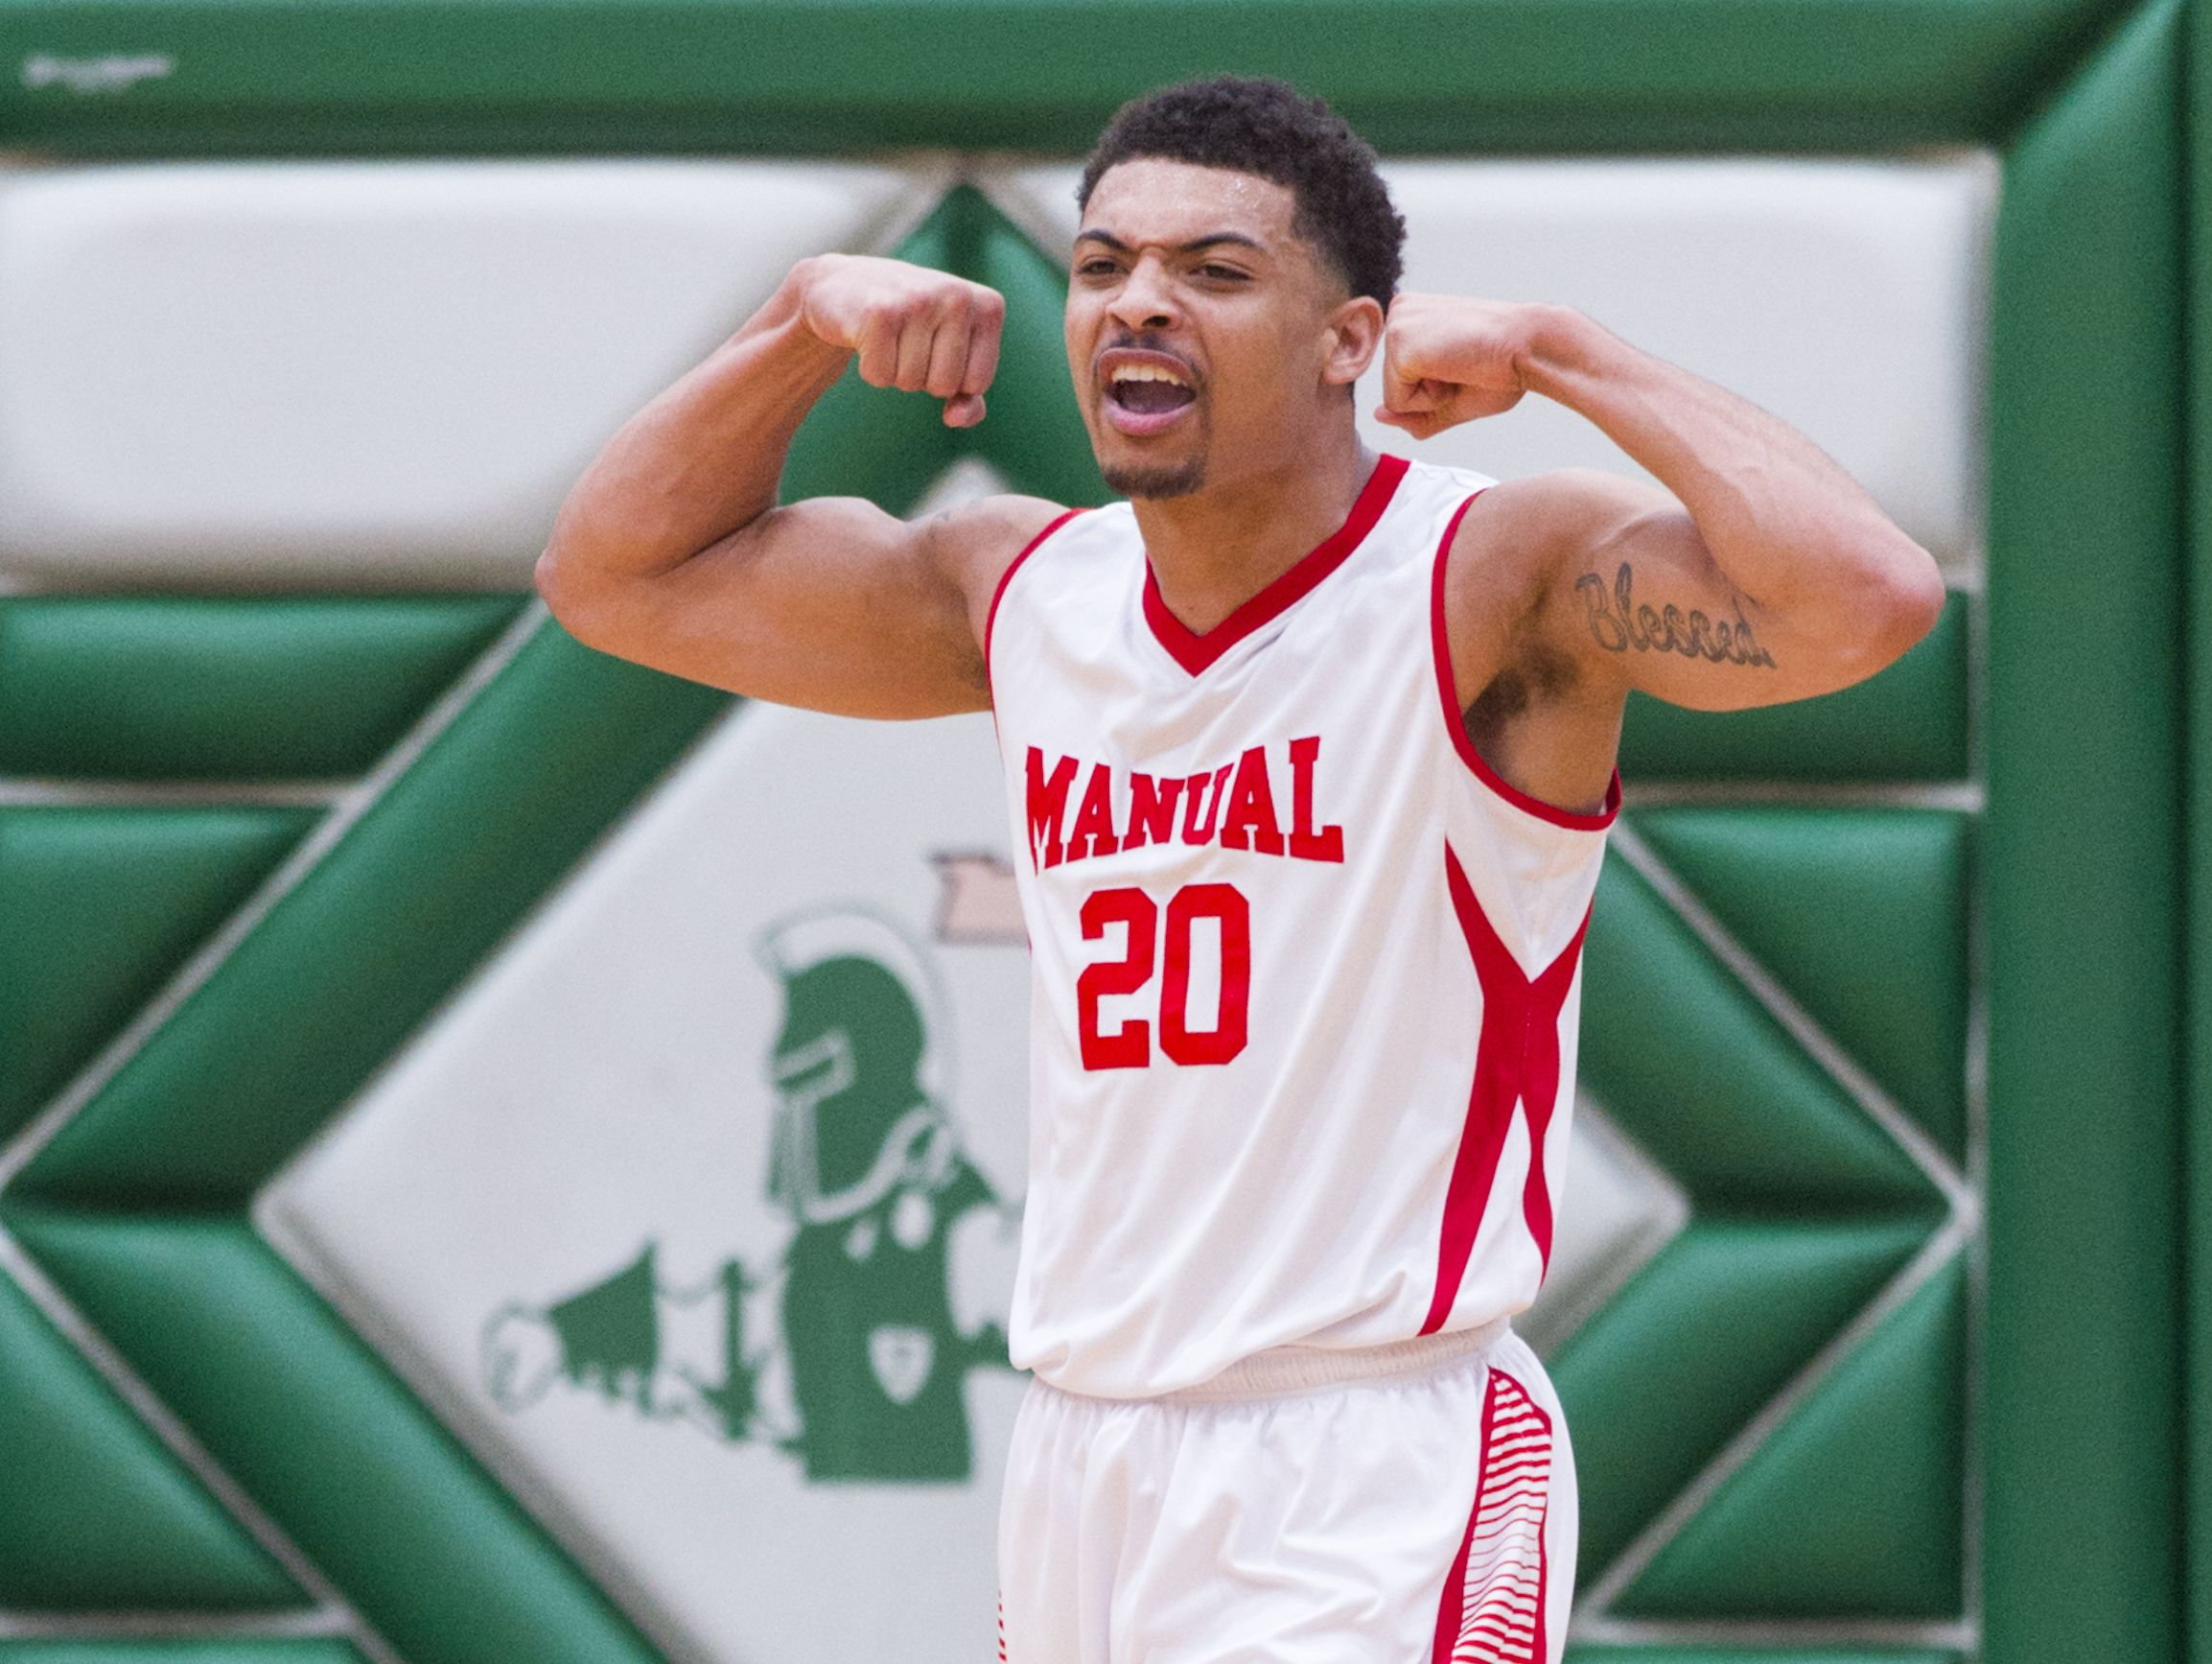 Indianapolis Emmerich Manual High School sophomore Thomas Waldon (20) reacts after a slam dunk during the first half of an IHSAA high school basketball game Saturday, Jan. 21, 2017, at Arsenal Tech High School. Four teams competed in the semi-final round of the Indianapolis City Boys Basketball Tournament.